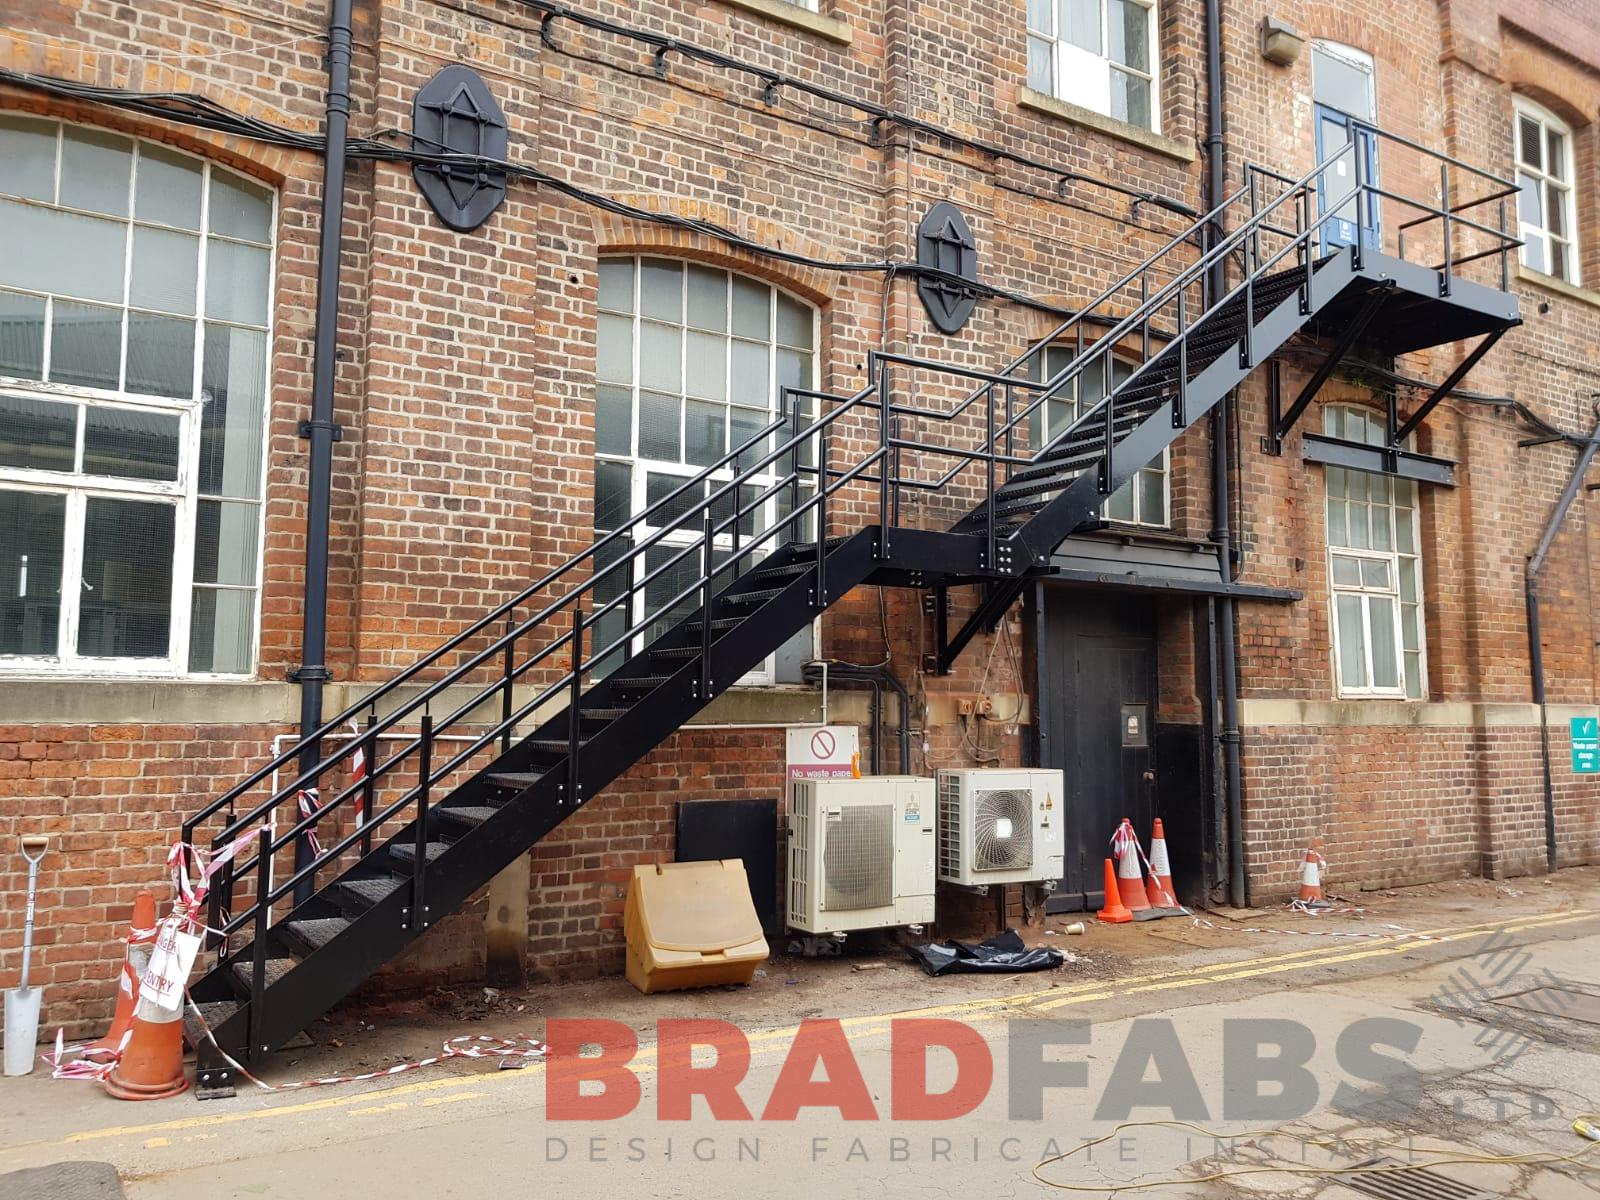 External Steel Fire Escape designed, manufactured and installed by Bradfabs